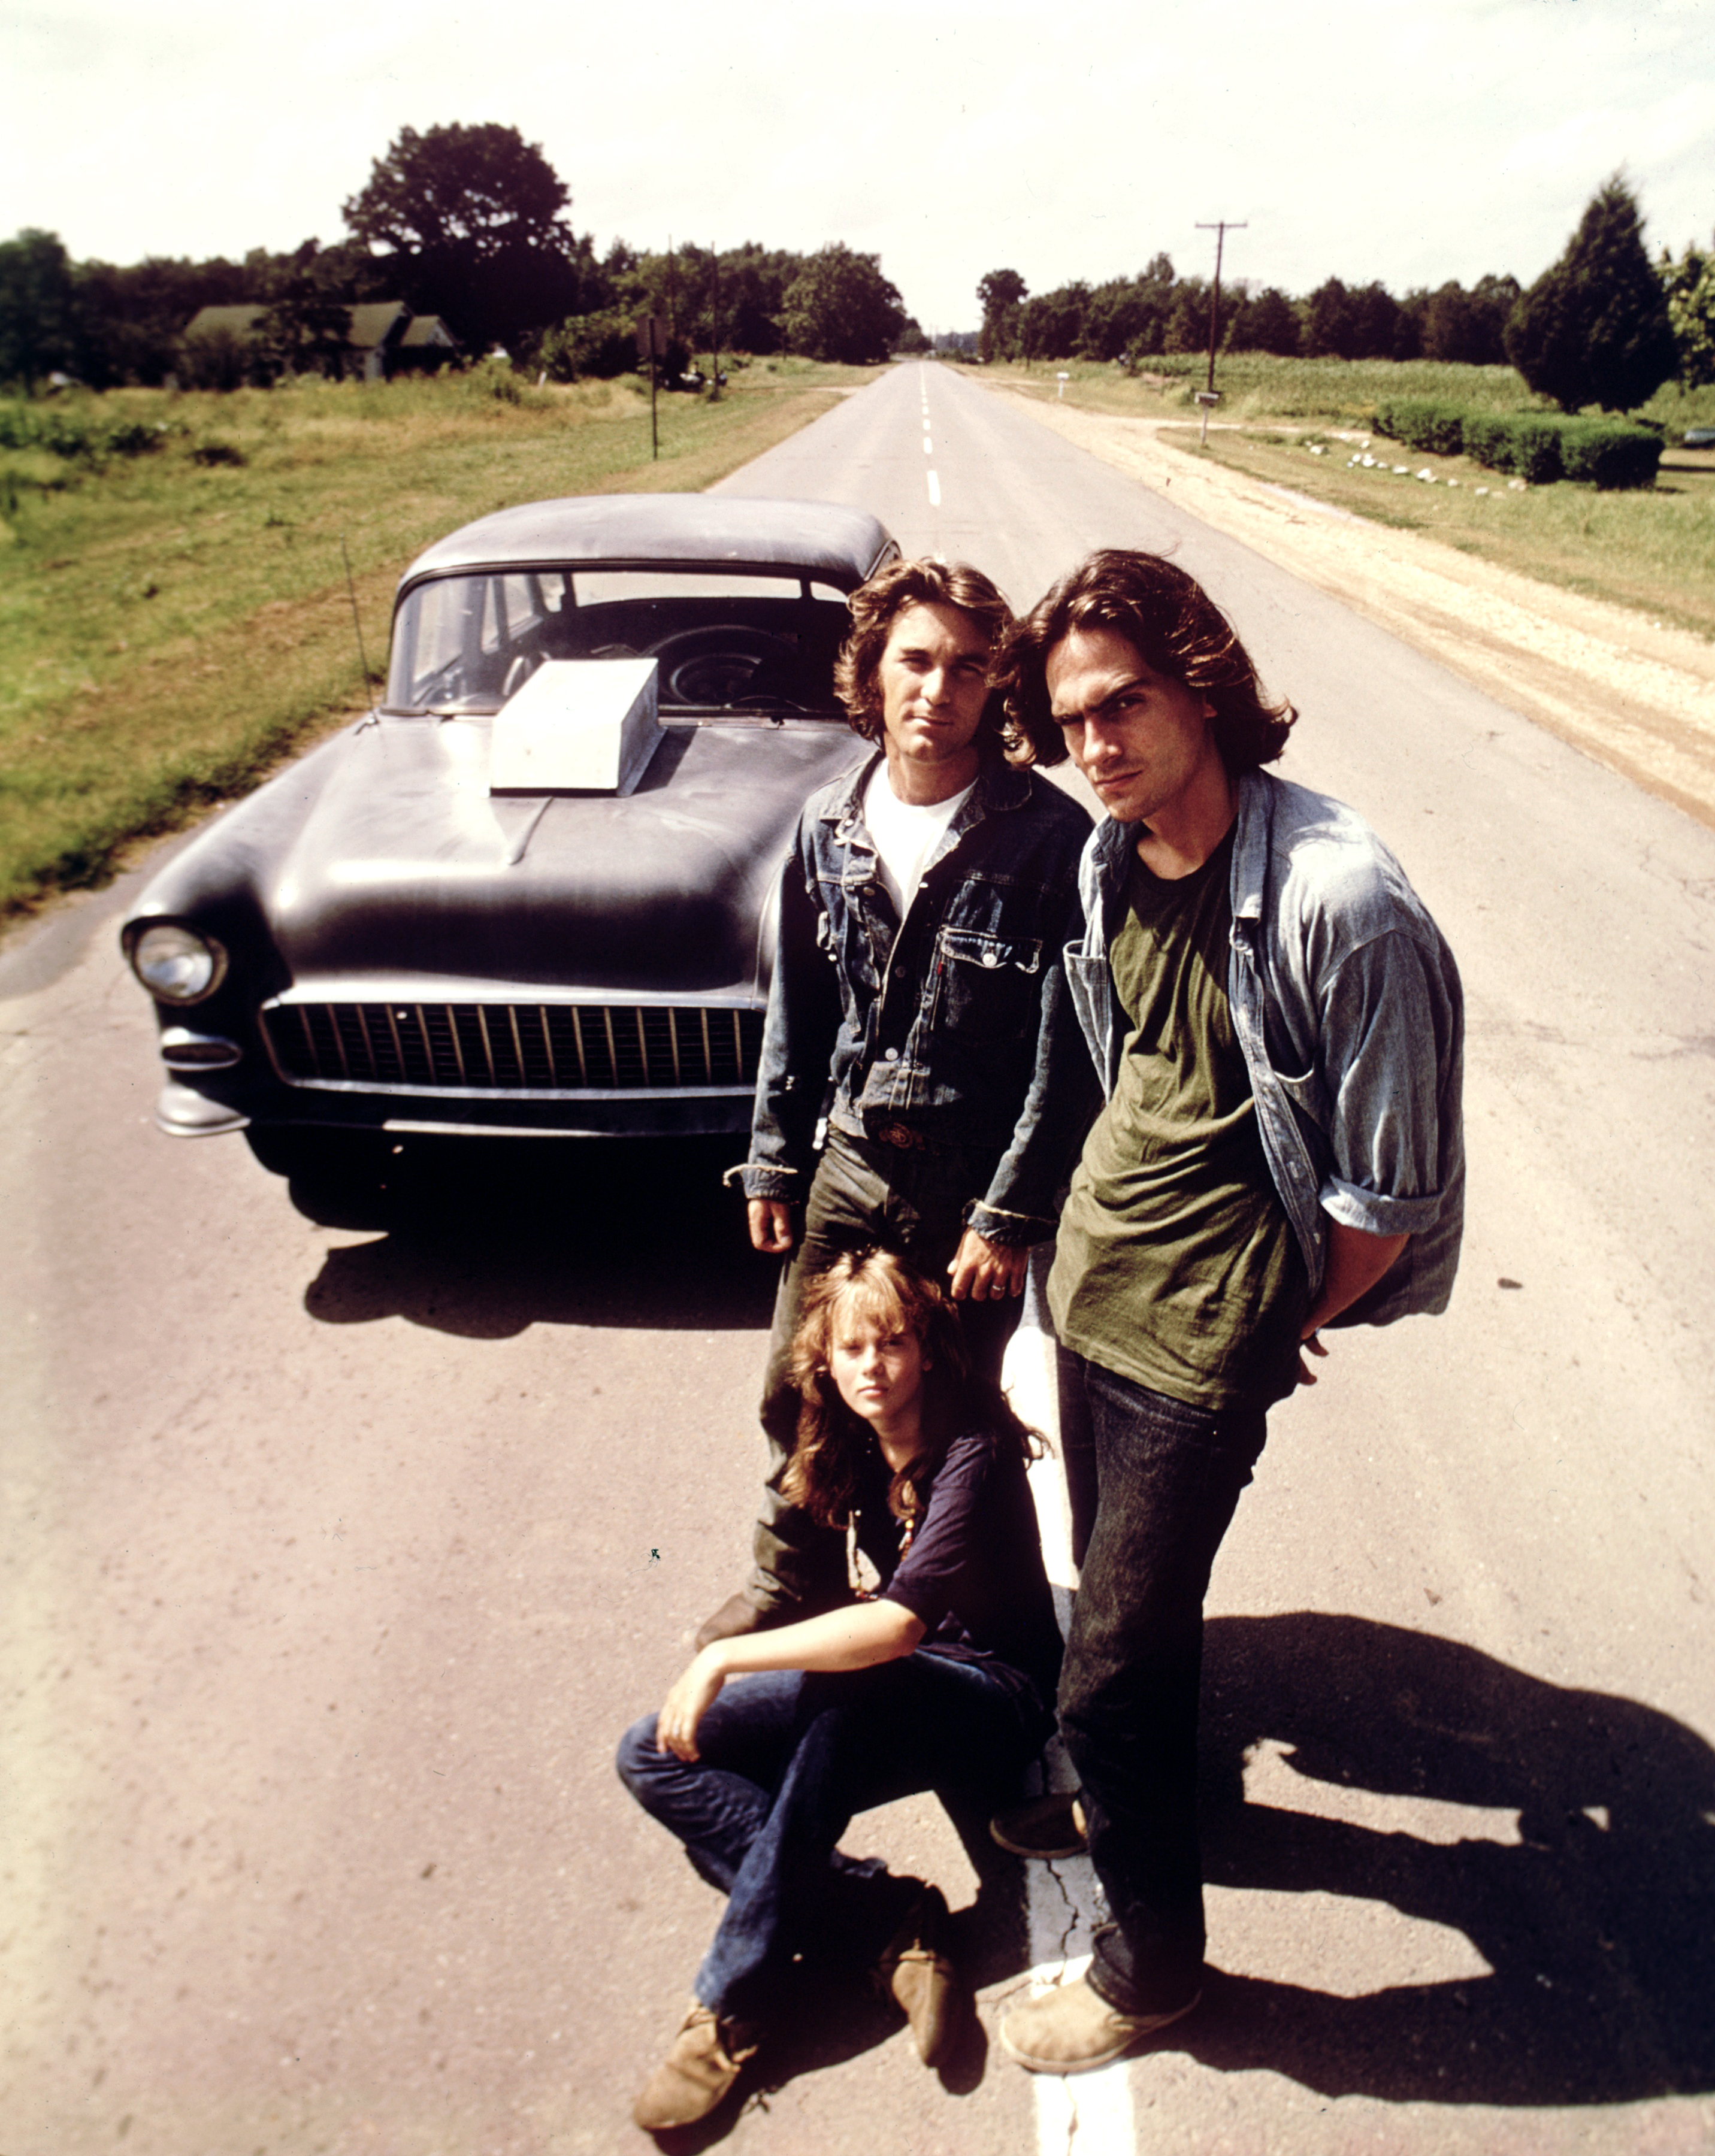 Roll out: Monte Hellman's 1971 classic, 'Two-Lane Blacktop.' | © 1971 Universal Pictures and Michael Laughlin Enterprises Inc. All Rights Reserved.